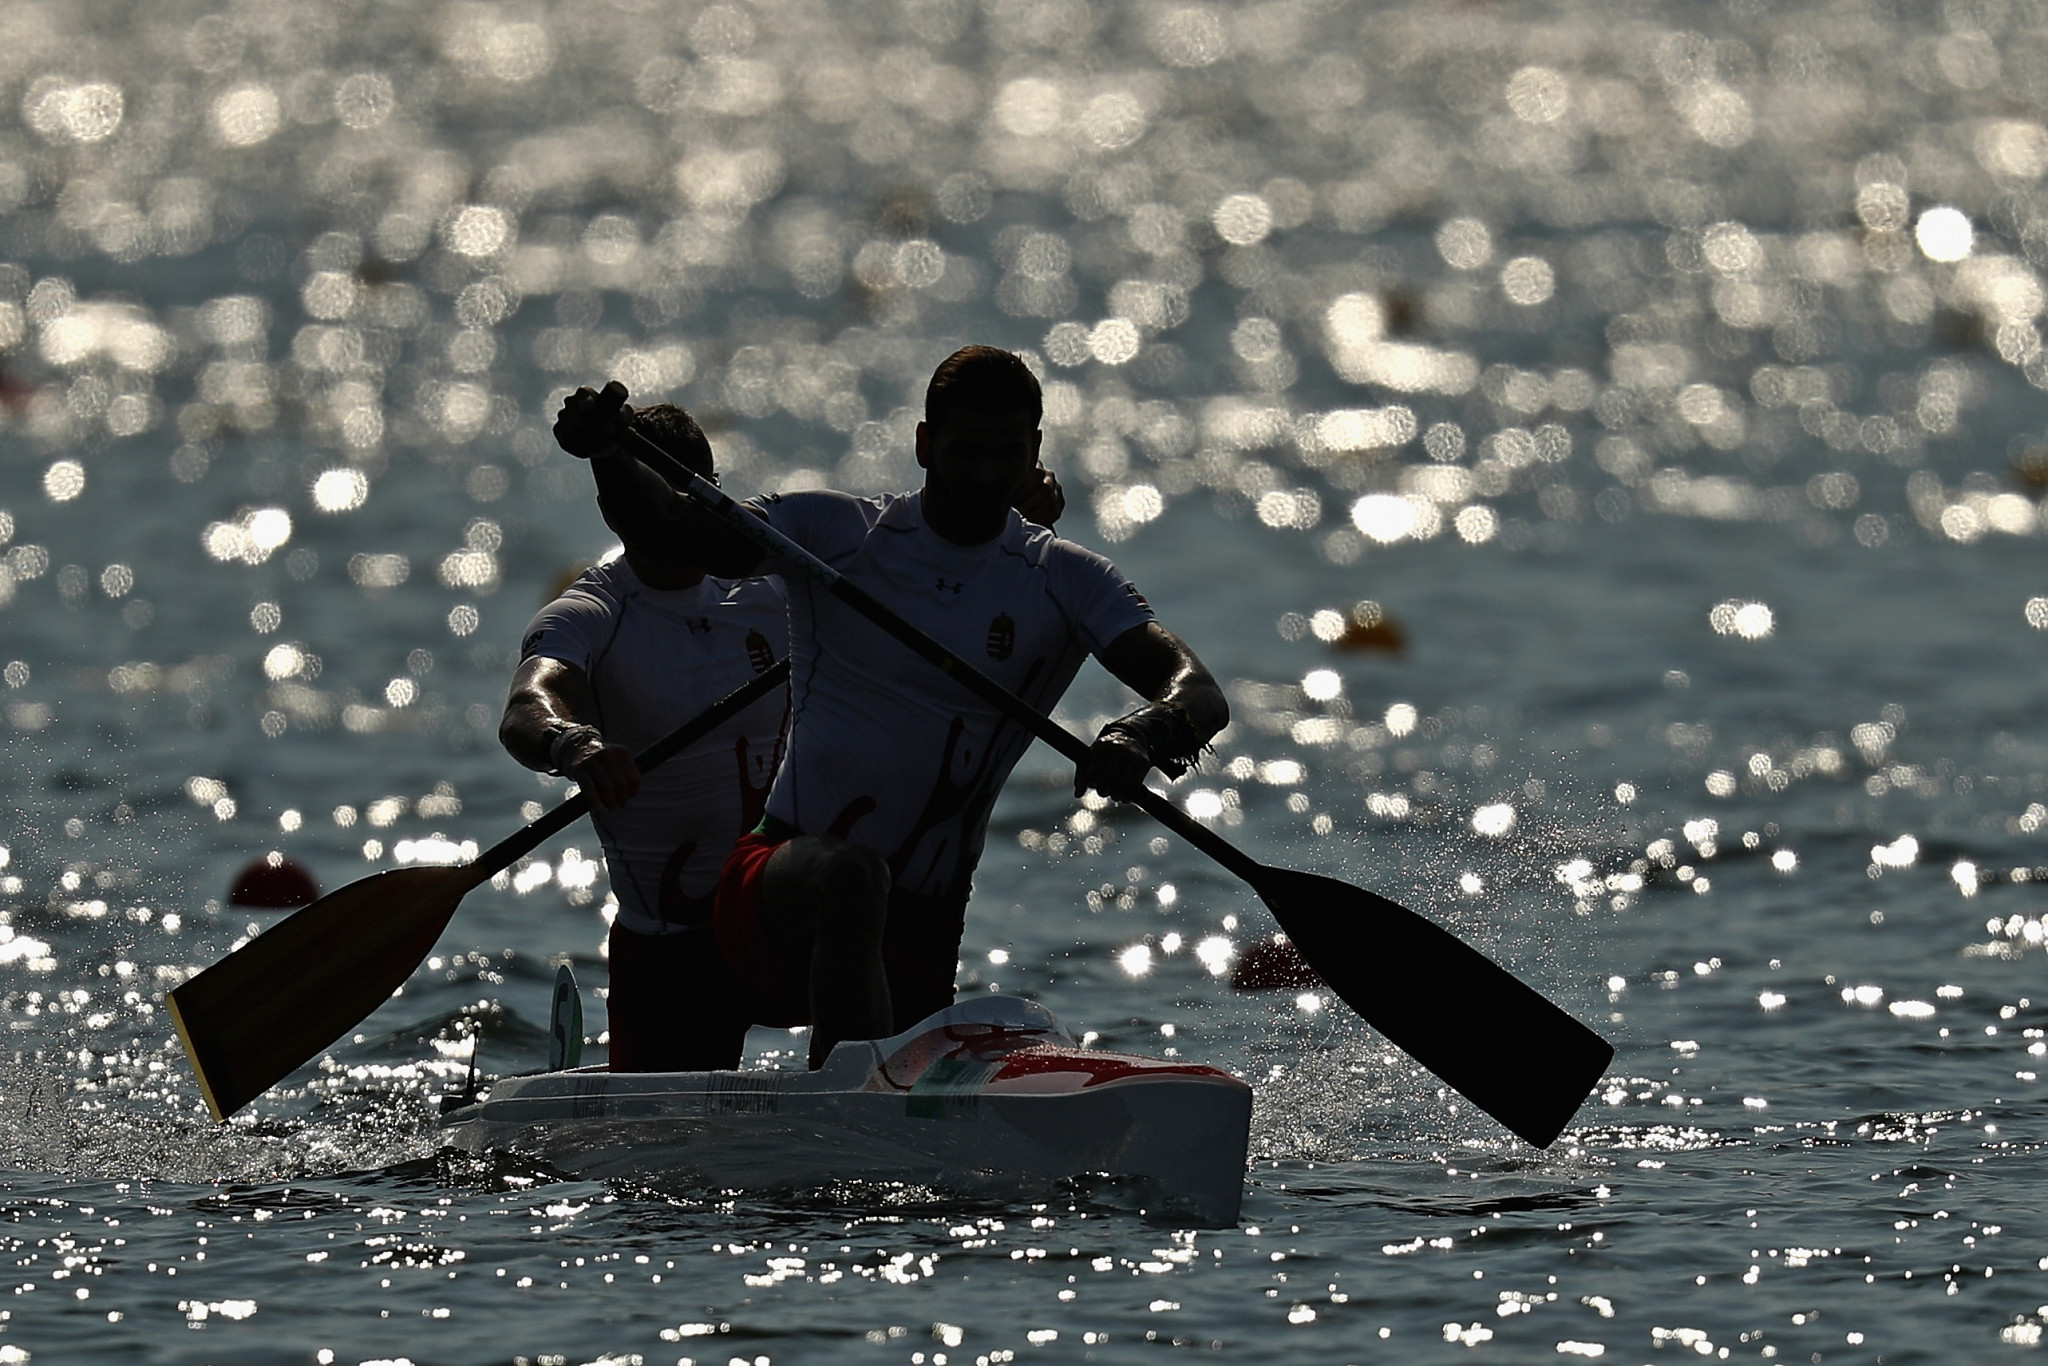 Hungary blitz 2021 ICF Juniors and Under-23 Canoe Sprint World Championships with 29 medals